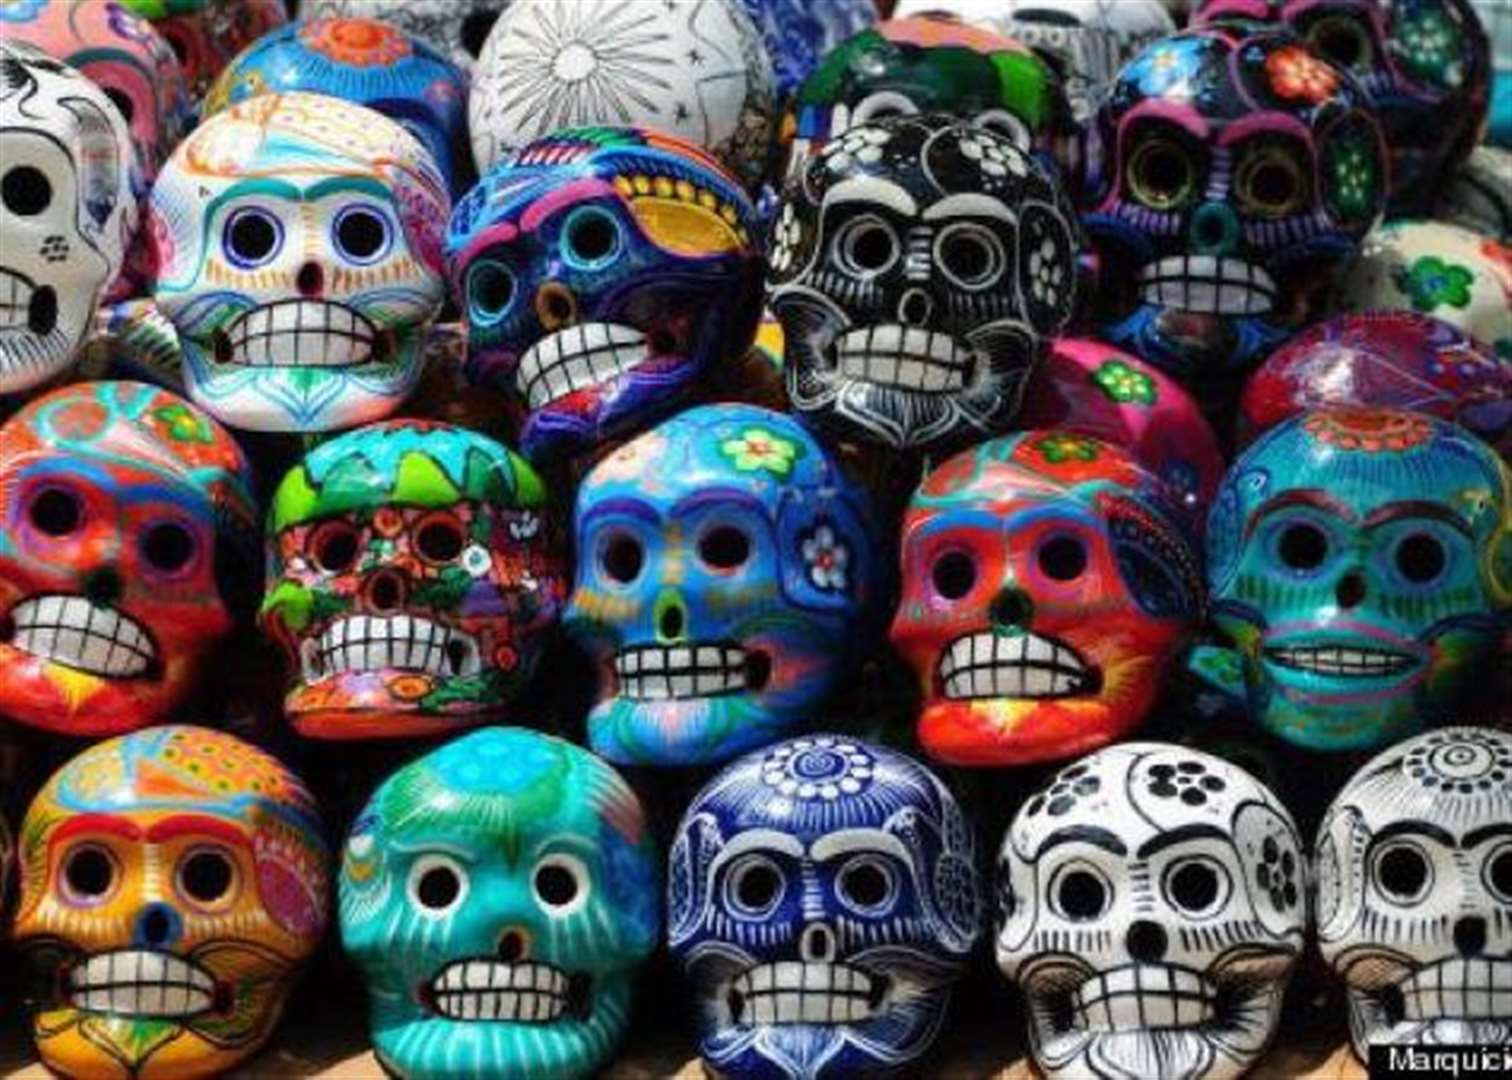 Day of the Dead festival comes to Cambridge